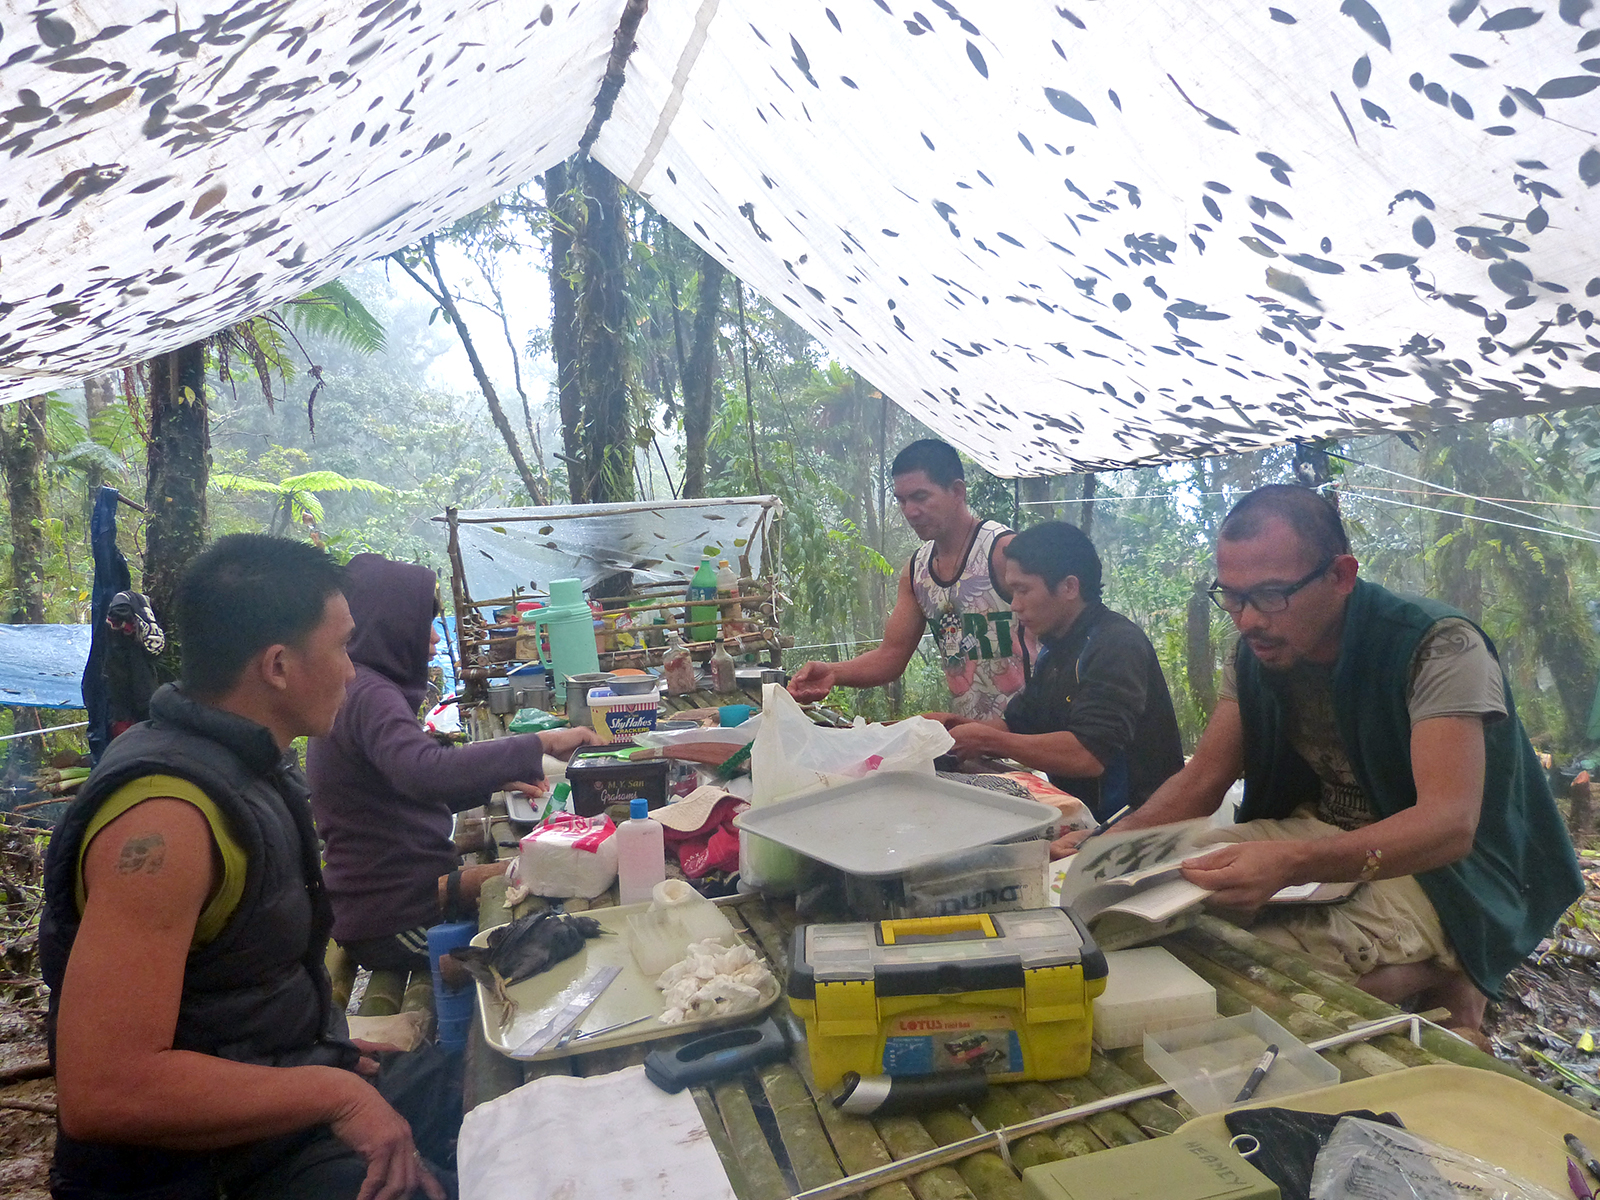 Fieldwork team working at table under a canopy top